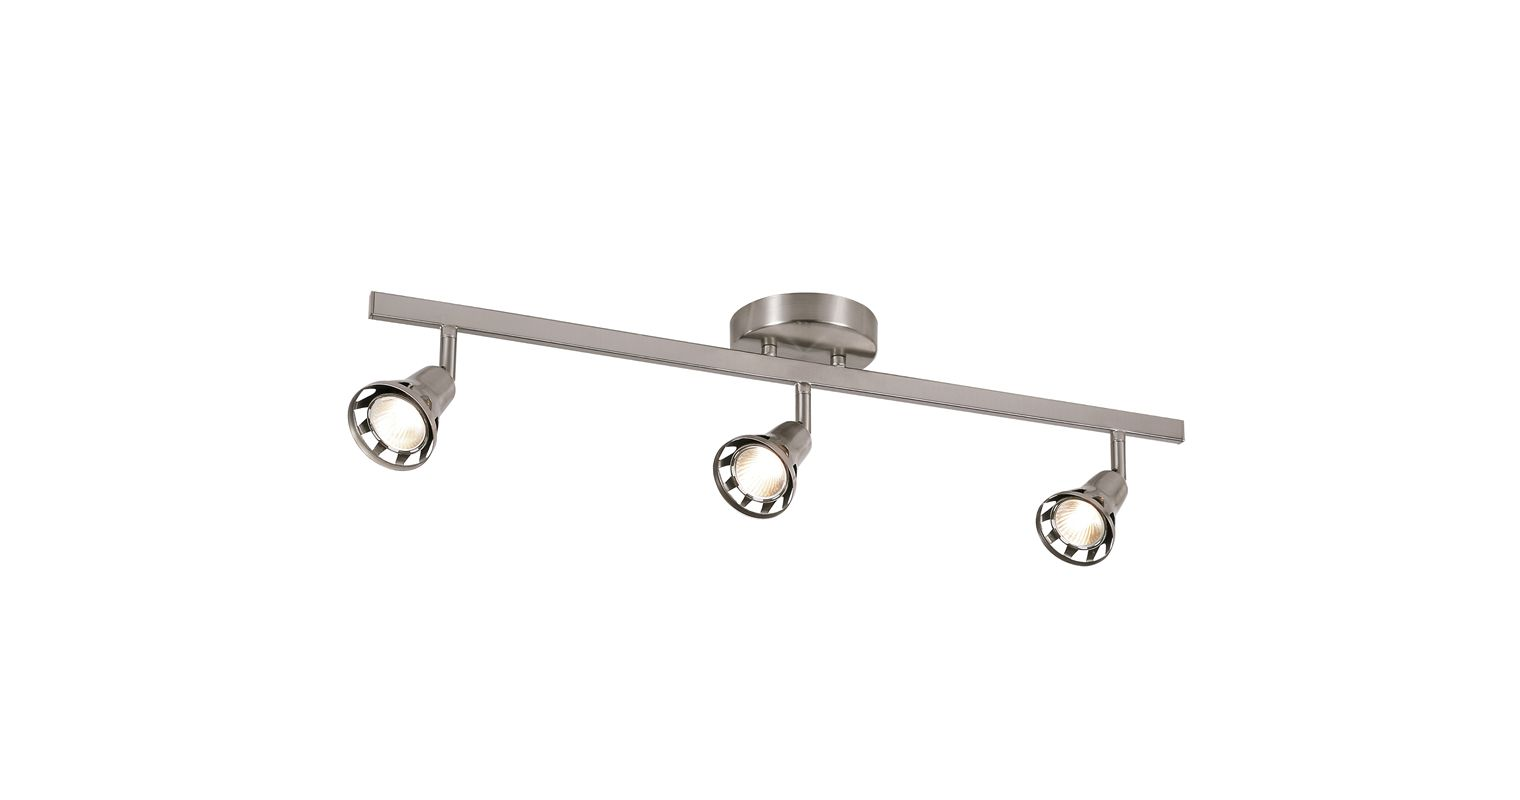 Trans Globe Lighting W-493 BN Brushed Nickel Contemporary Track